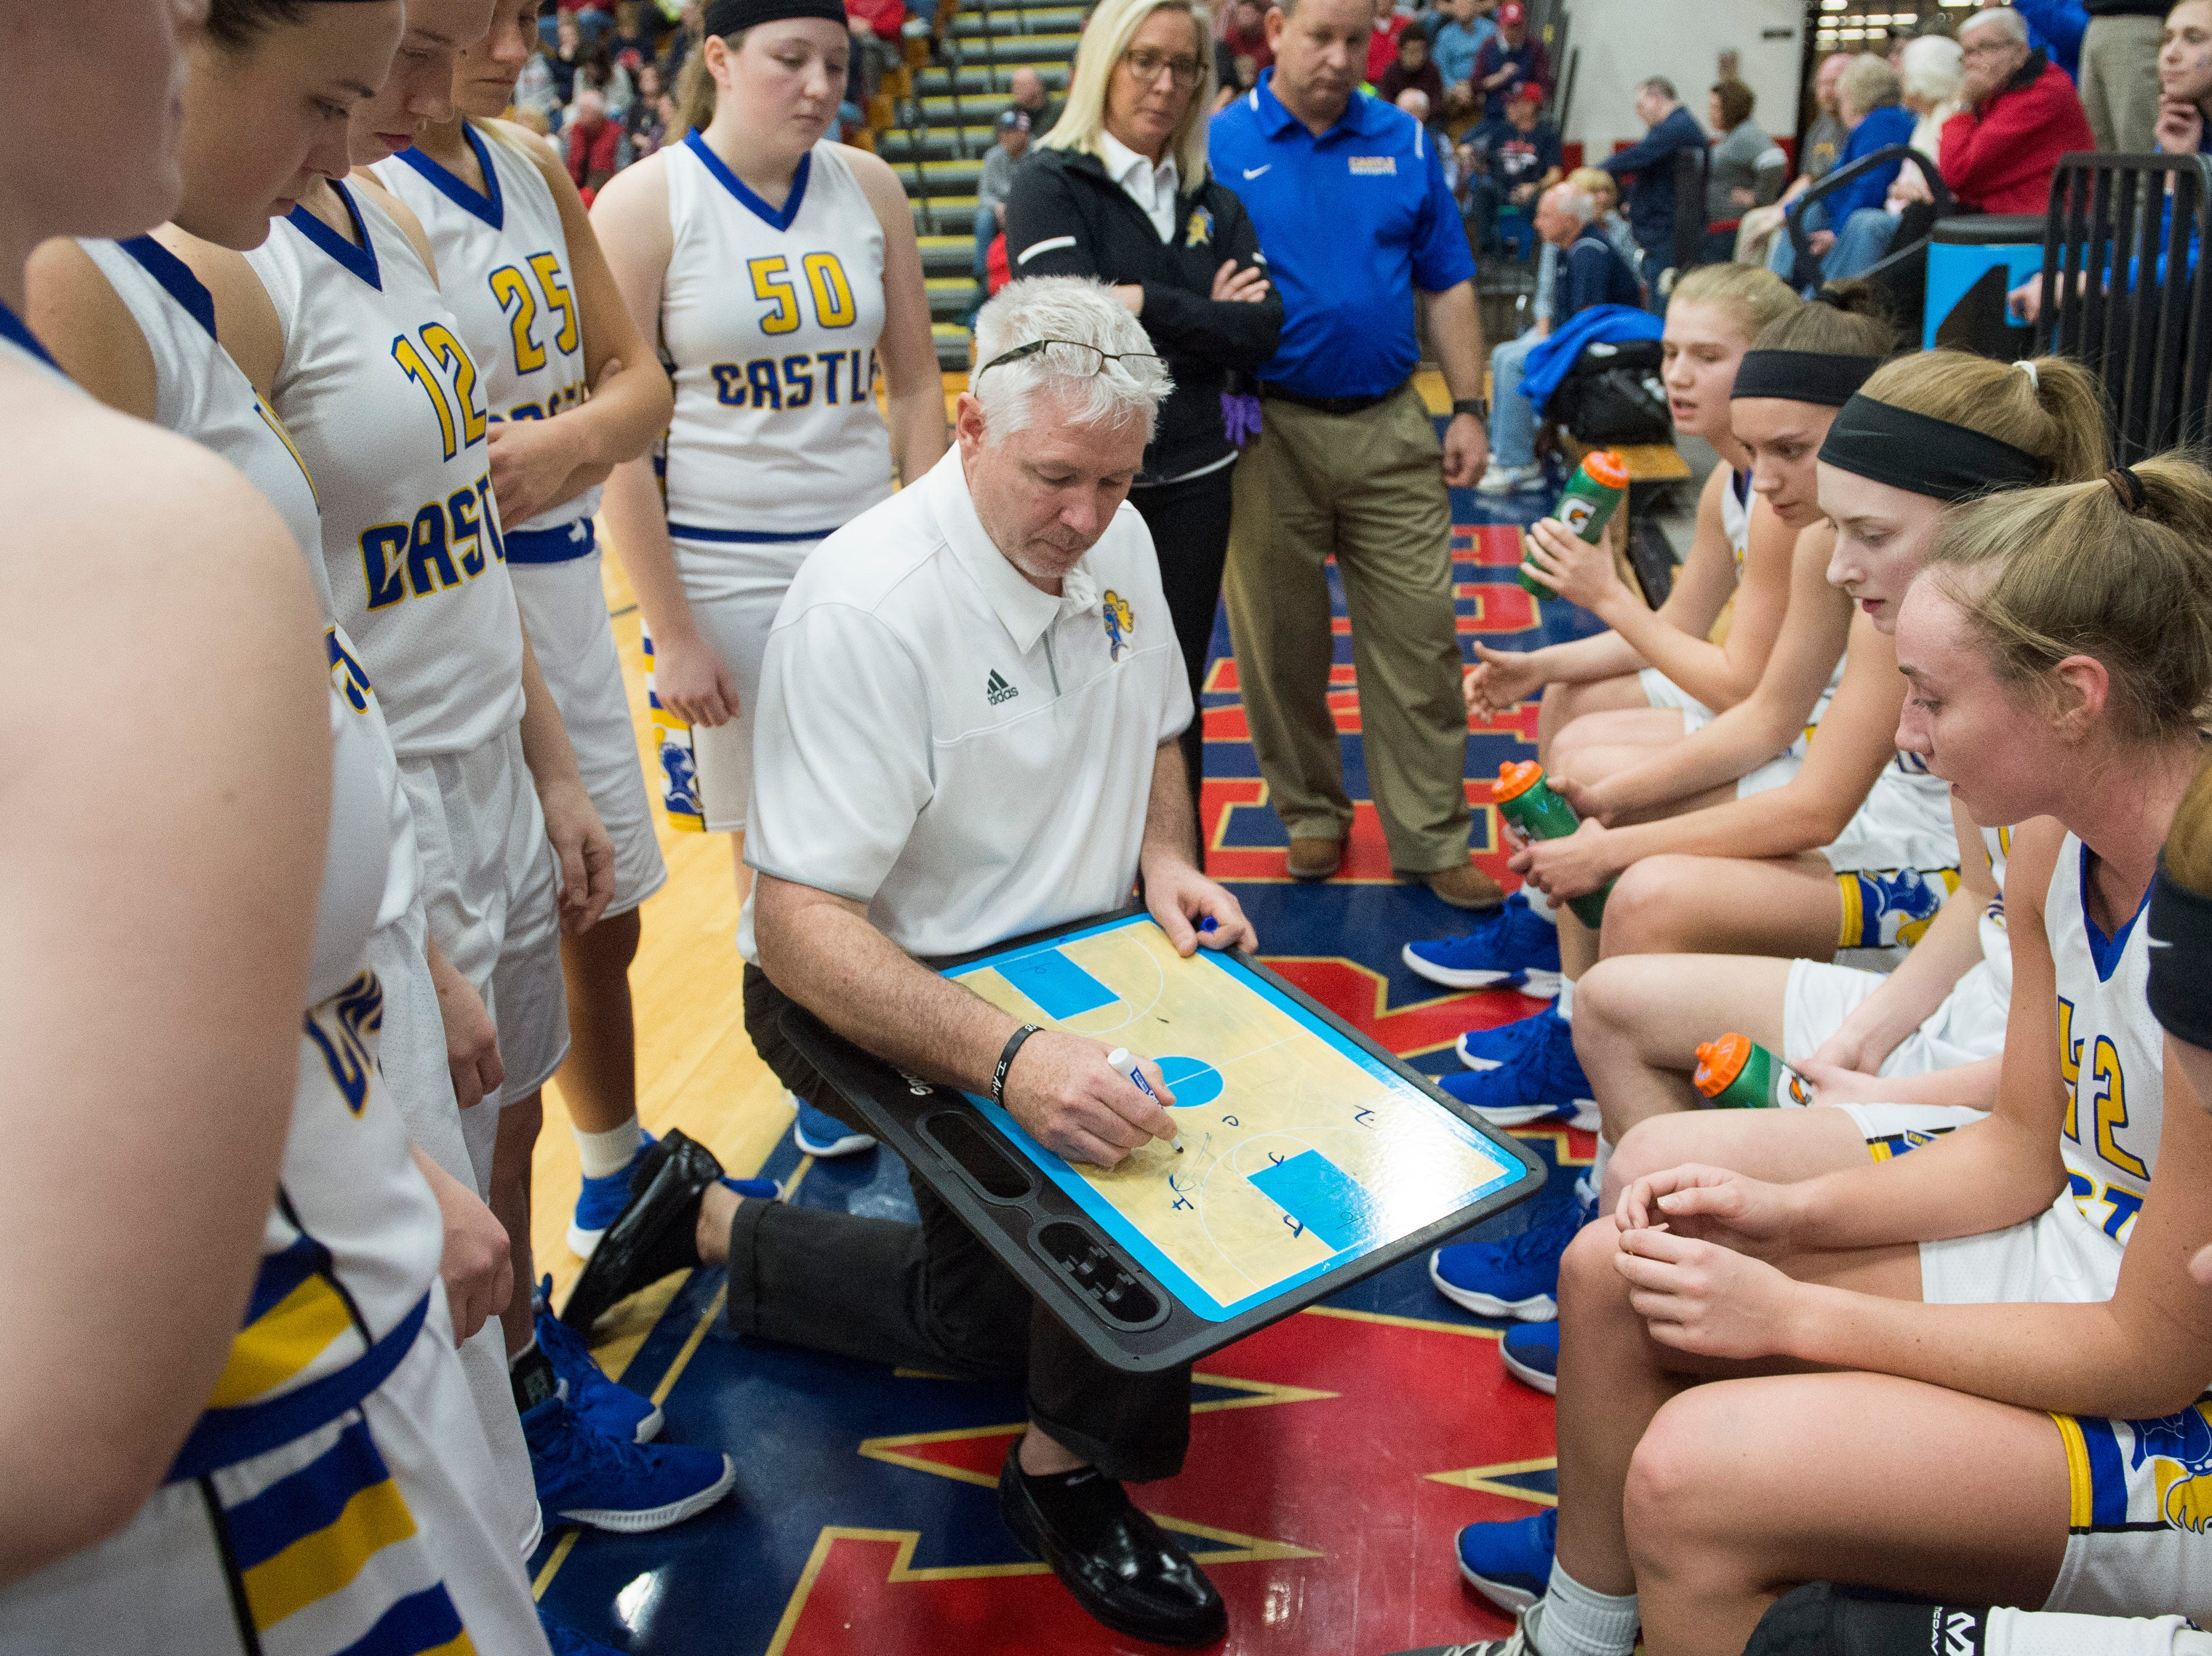 Castle Head Coach Robert Meier gives direction during a timeout in the  IHSAA Girls Basketball Class 4A Regional Championship game against the Bedford North Lawrence Lady Stars at the Stars Field House in Bedford, Ind. Saturday, Feb. 9, 2019.